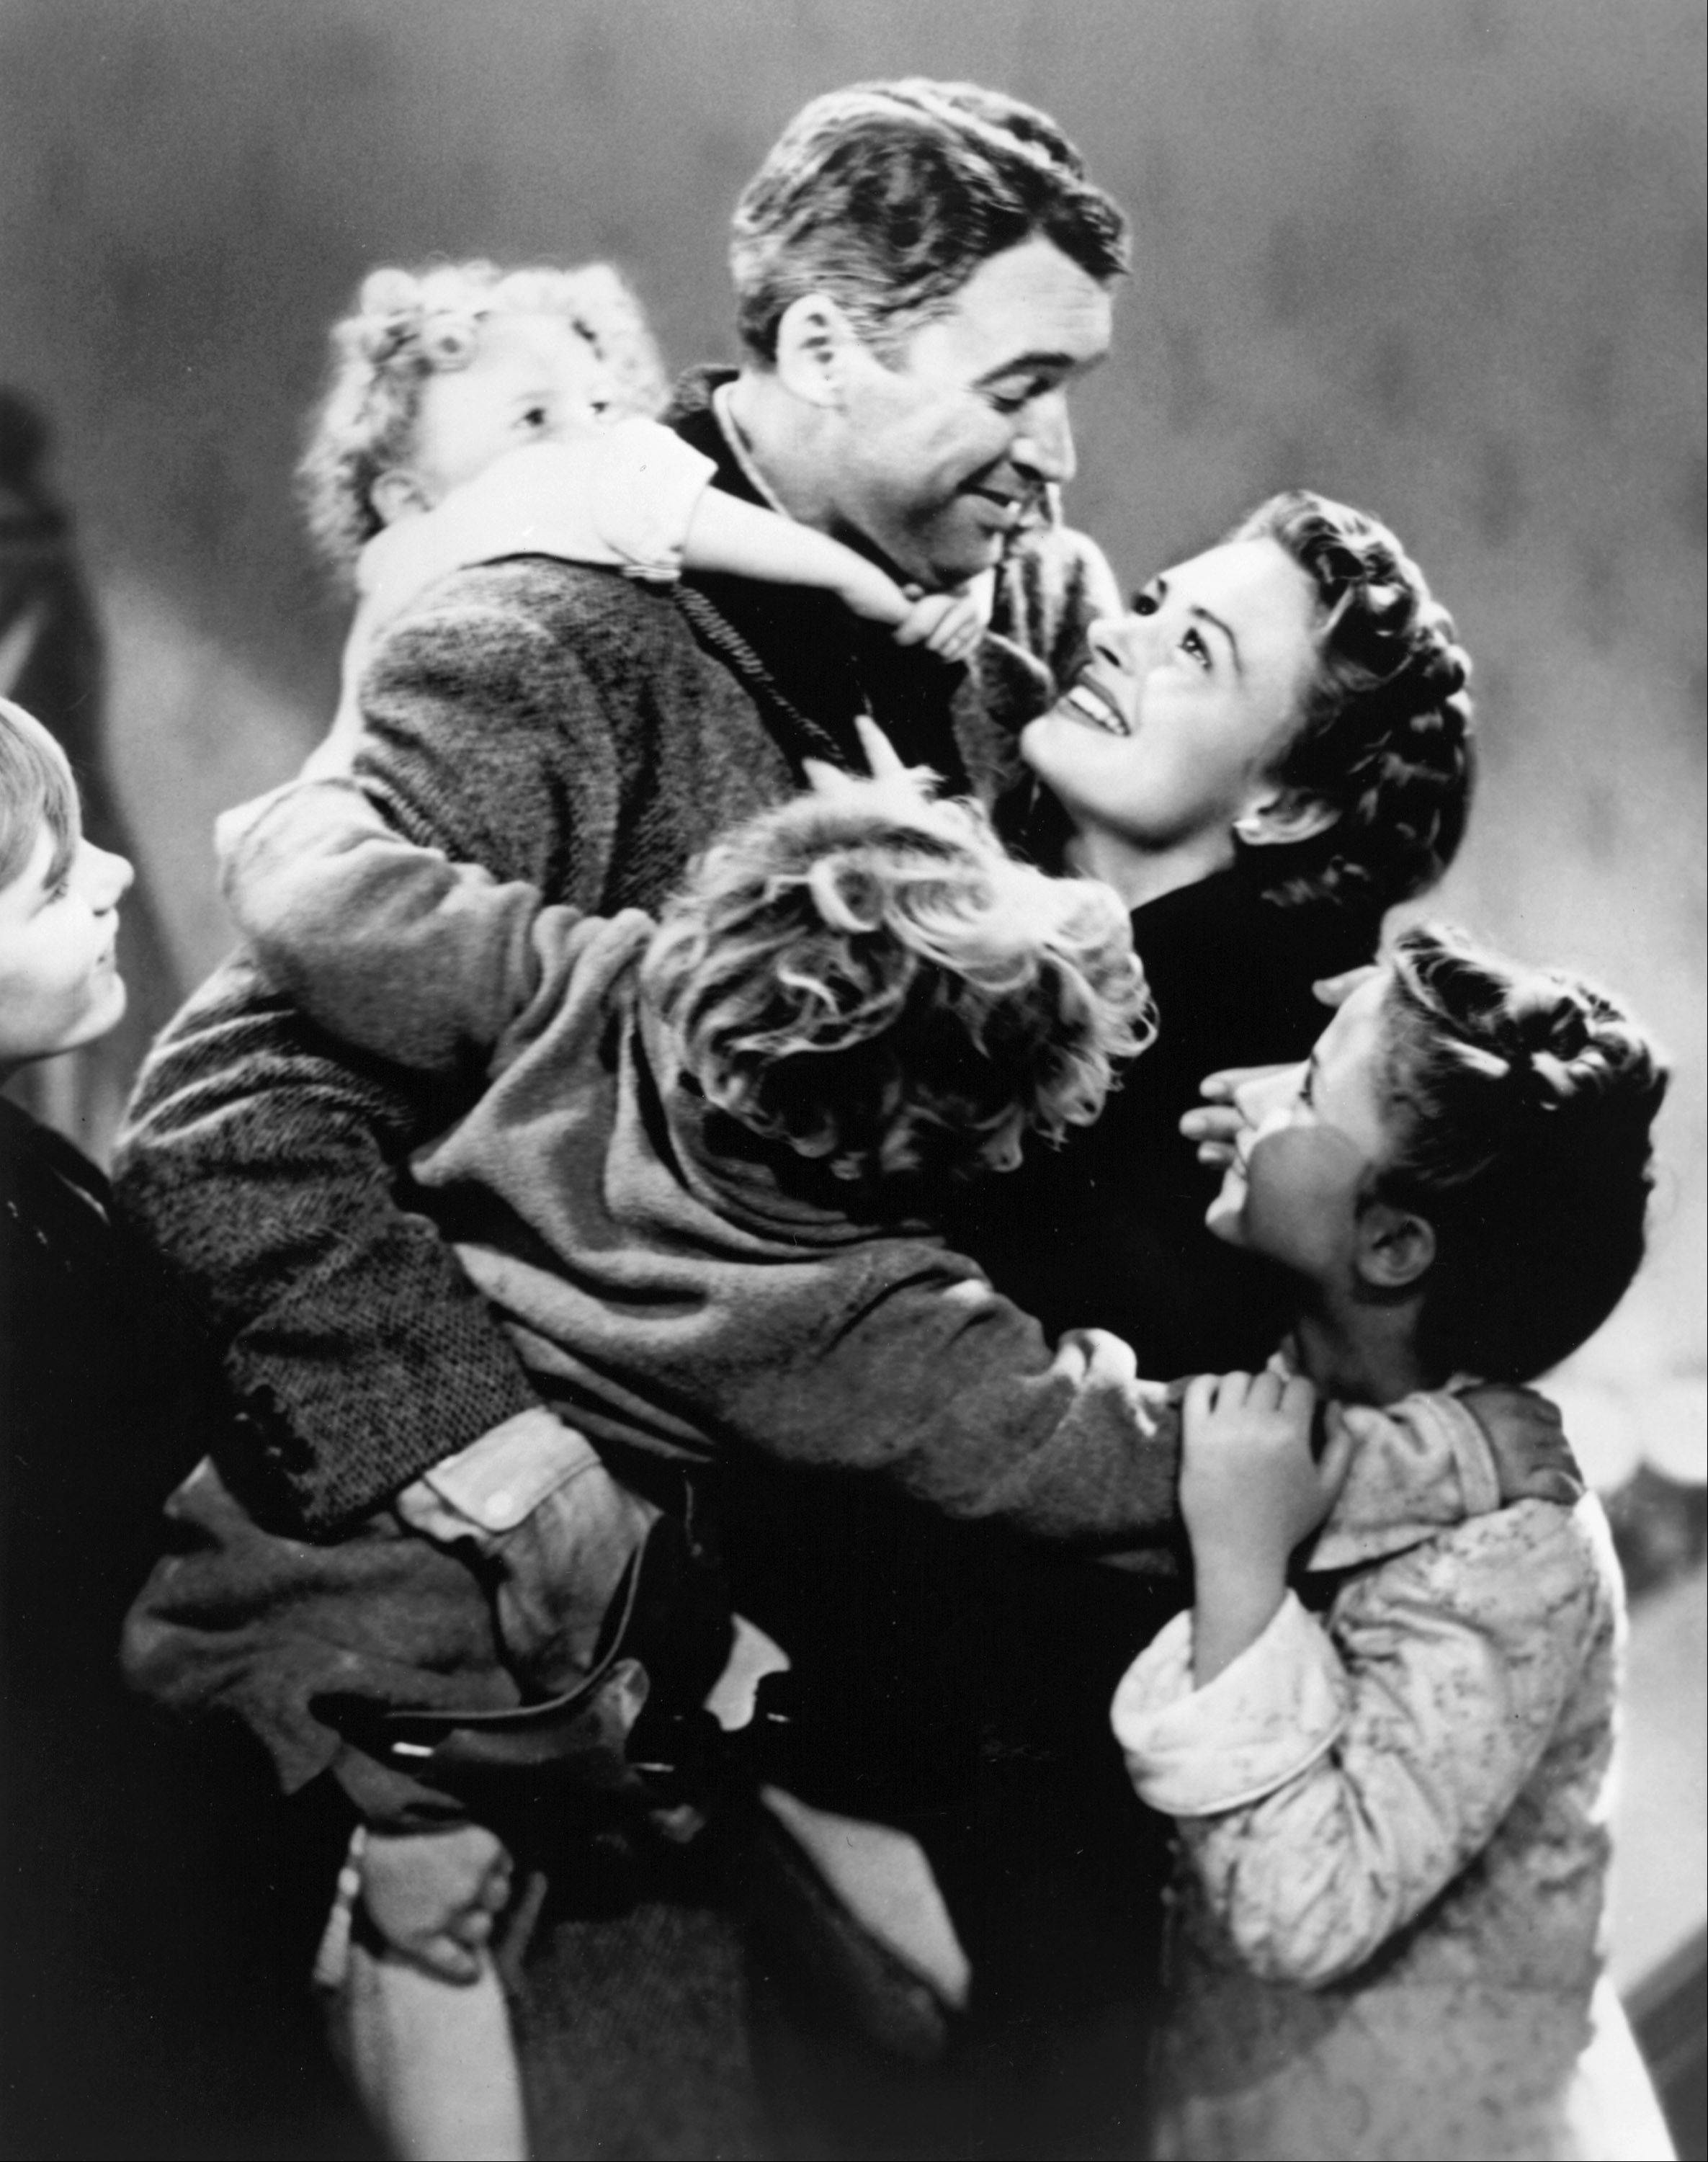 """It's a Wonderful Life"" is screened at the Hollywood Palms in Naperville and Hollywood Blvd. Cinema in Woodridge with actress Karolyn Grimes making appearances before the screenings."